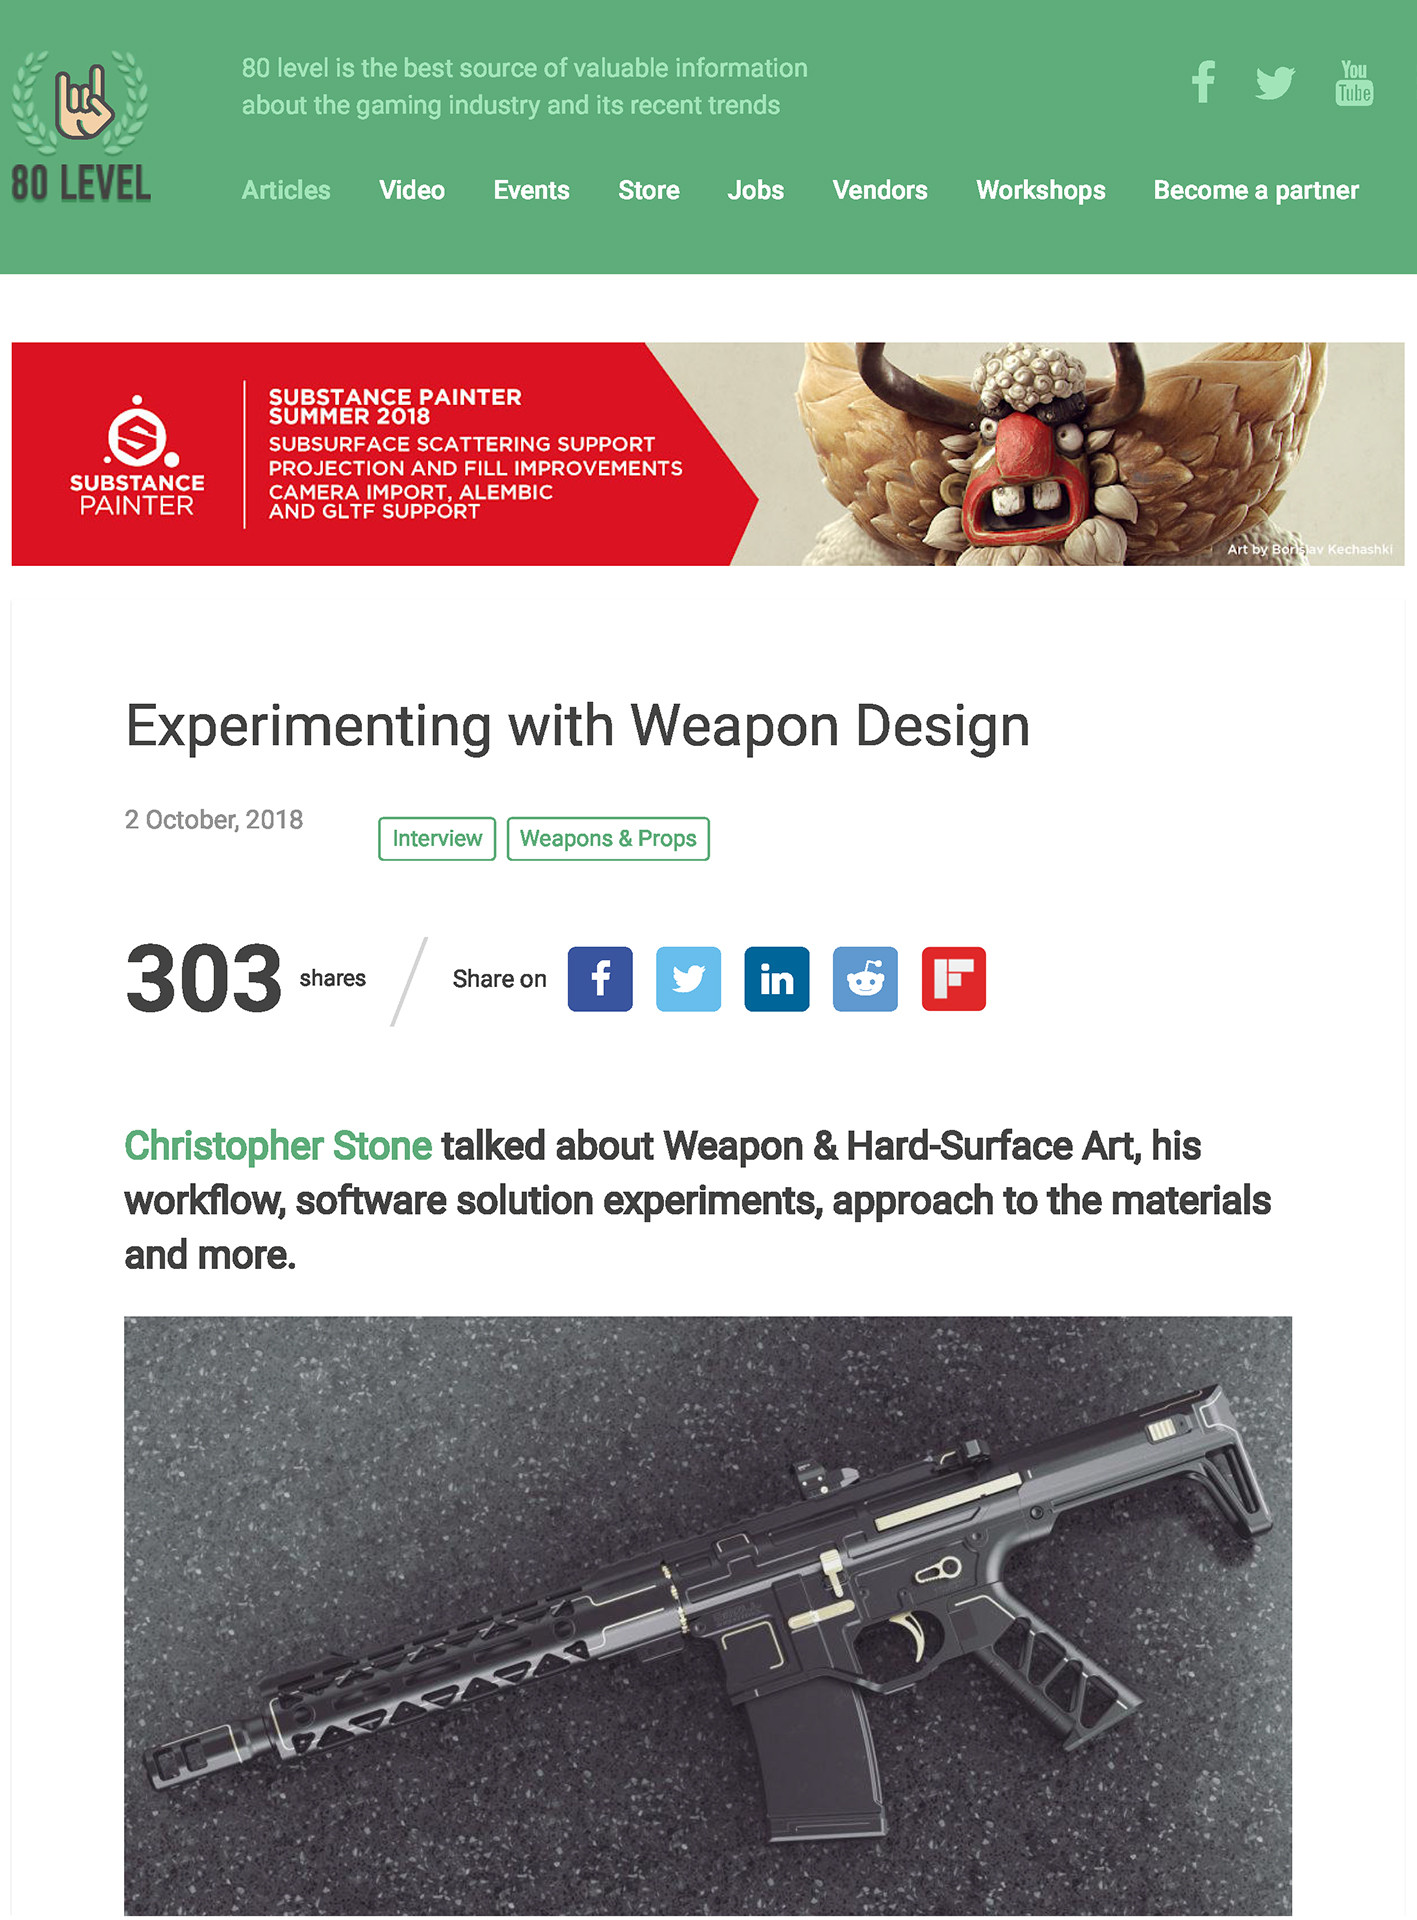 Chris stone experimenting with weapon design page 01